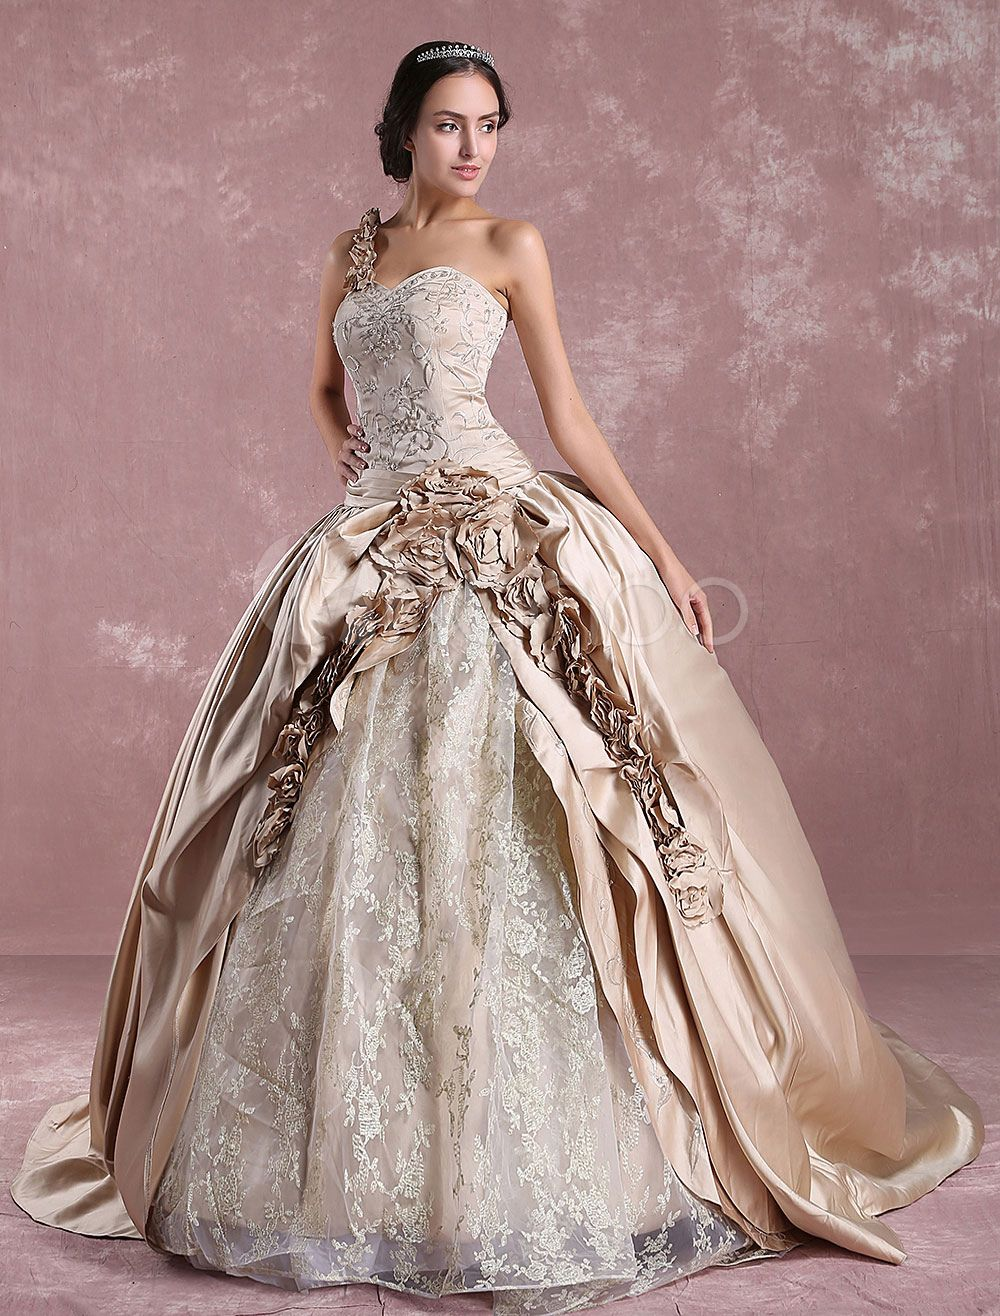 27 dresses wedding dress  Princess Wedding Dresses Champagne Victoria Bridal Gown One Shoulder